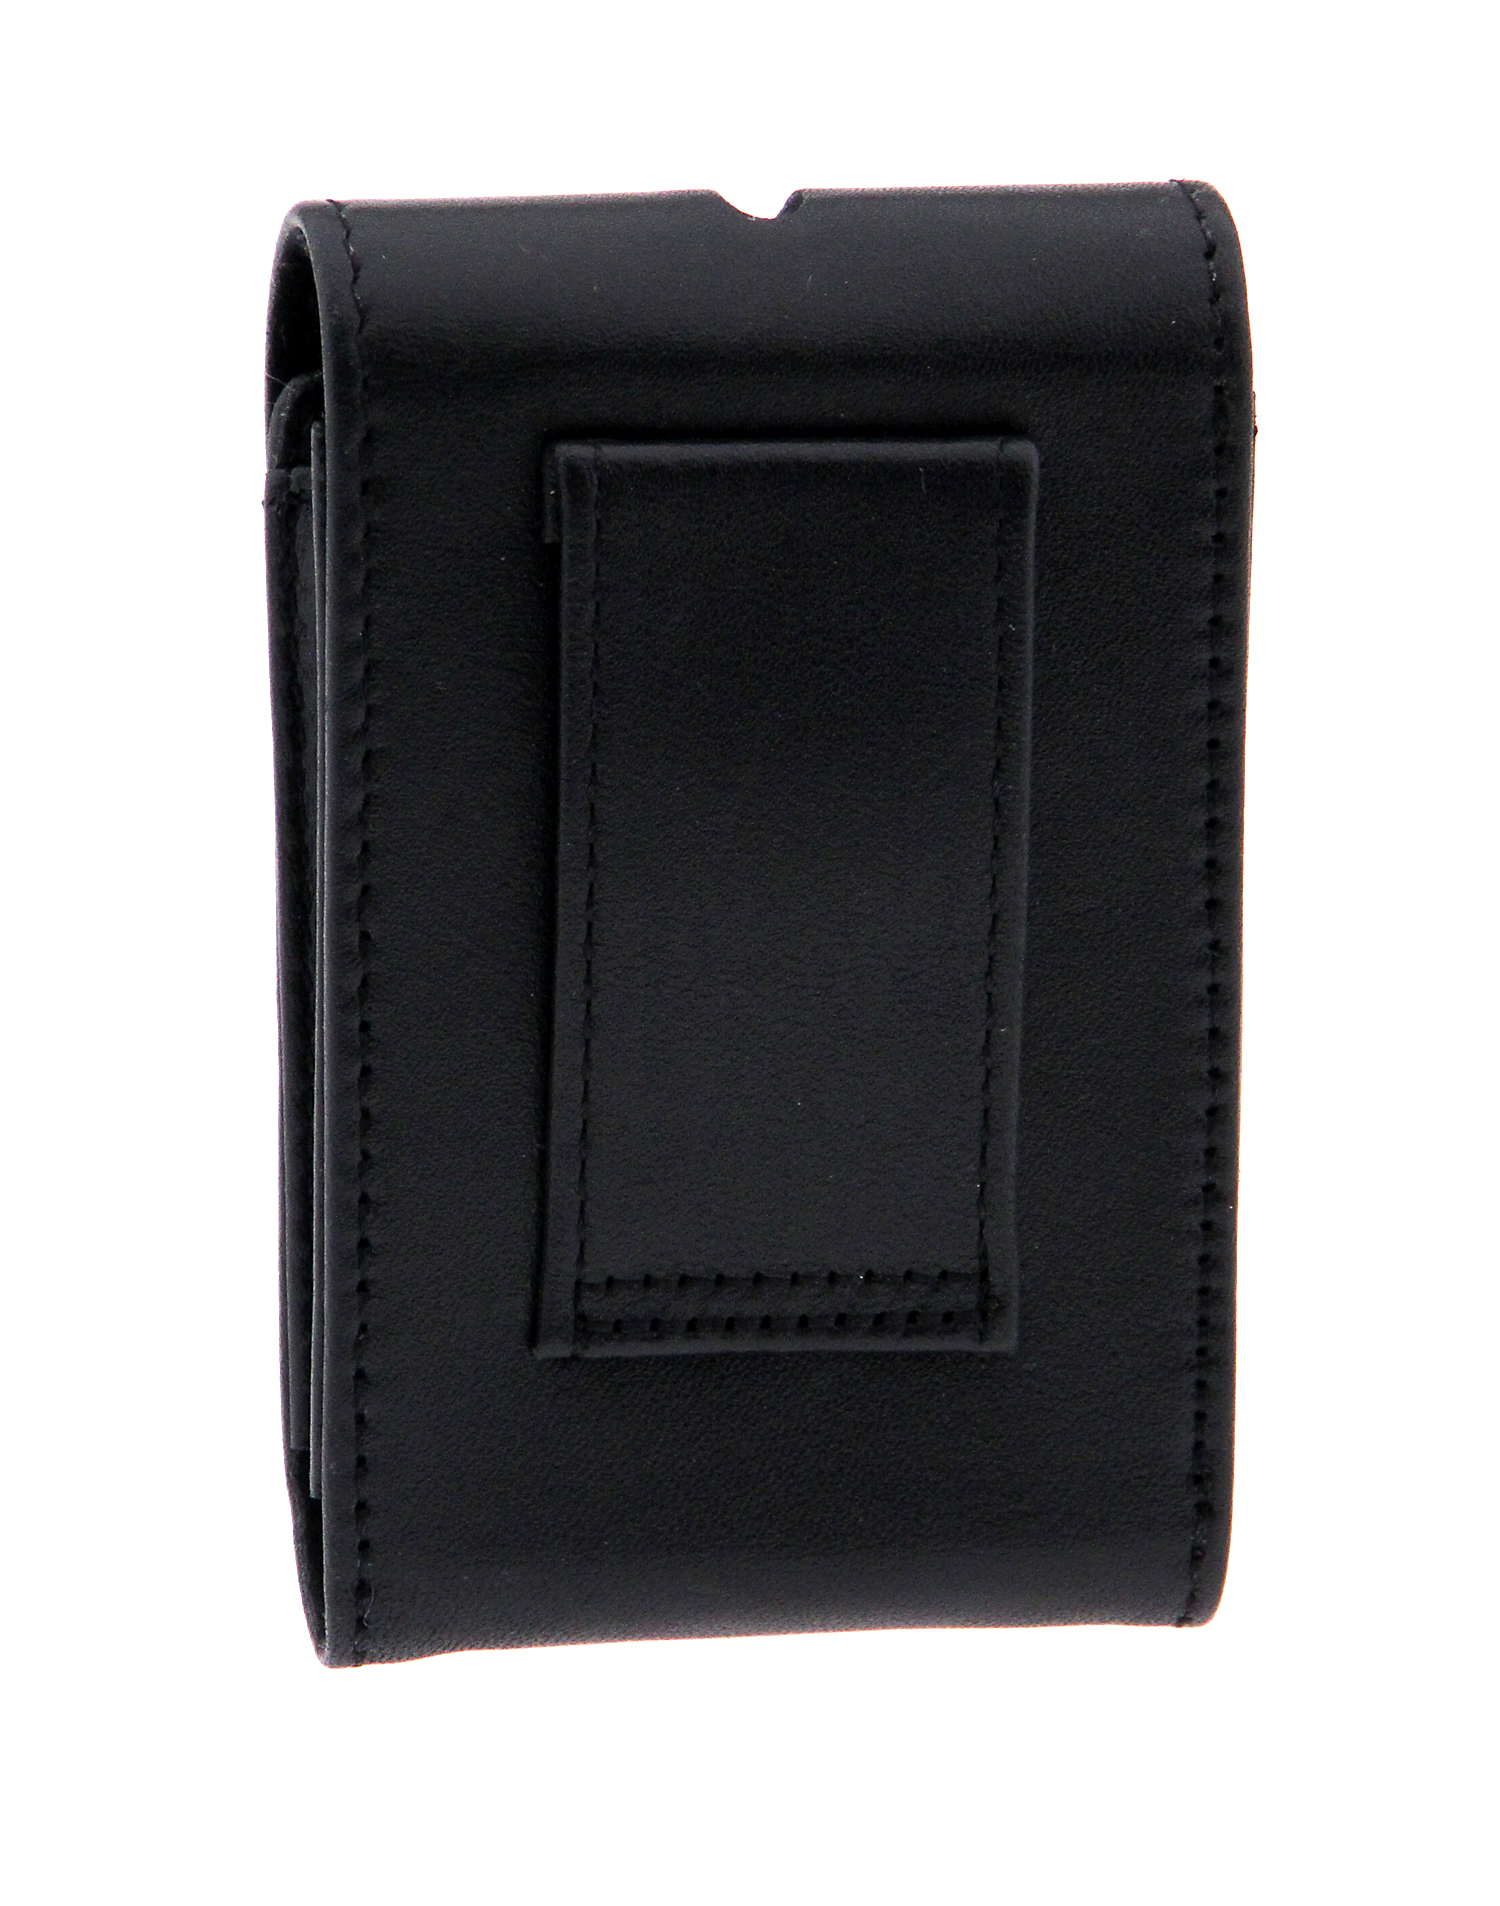 PSC-1050 Leather Case Black Used